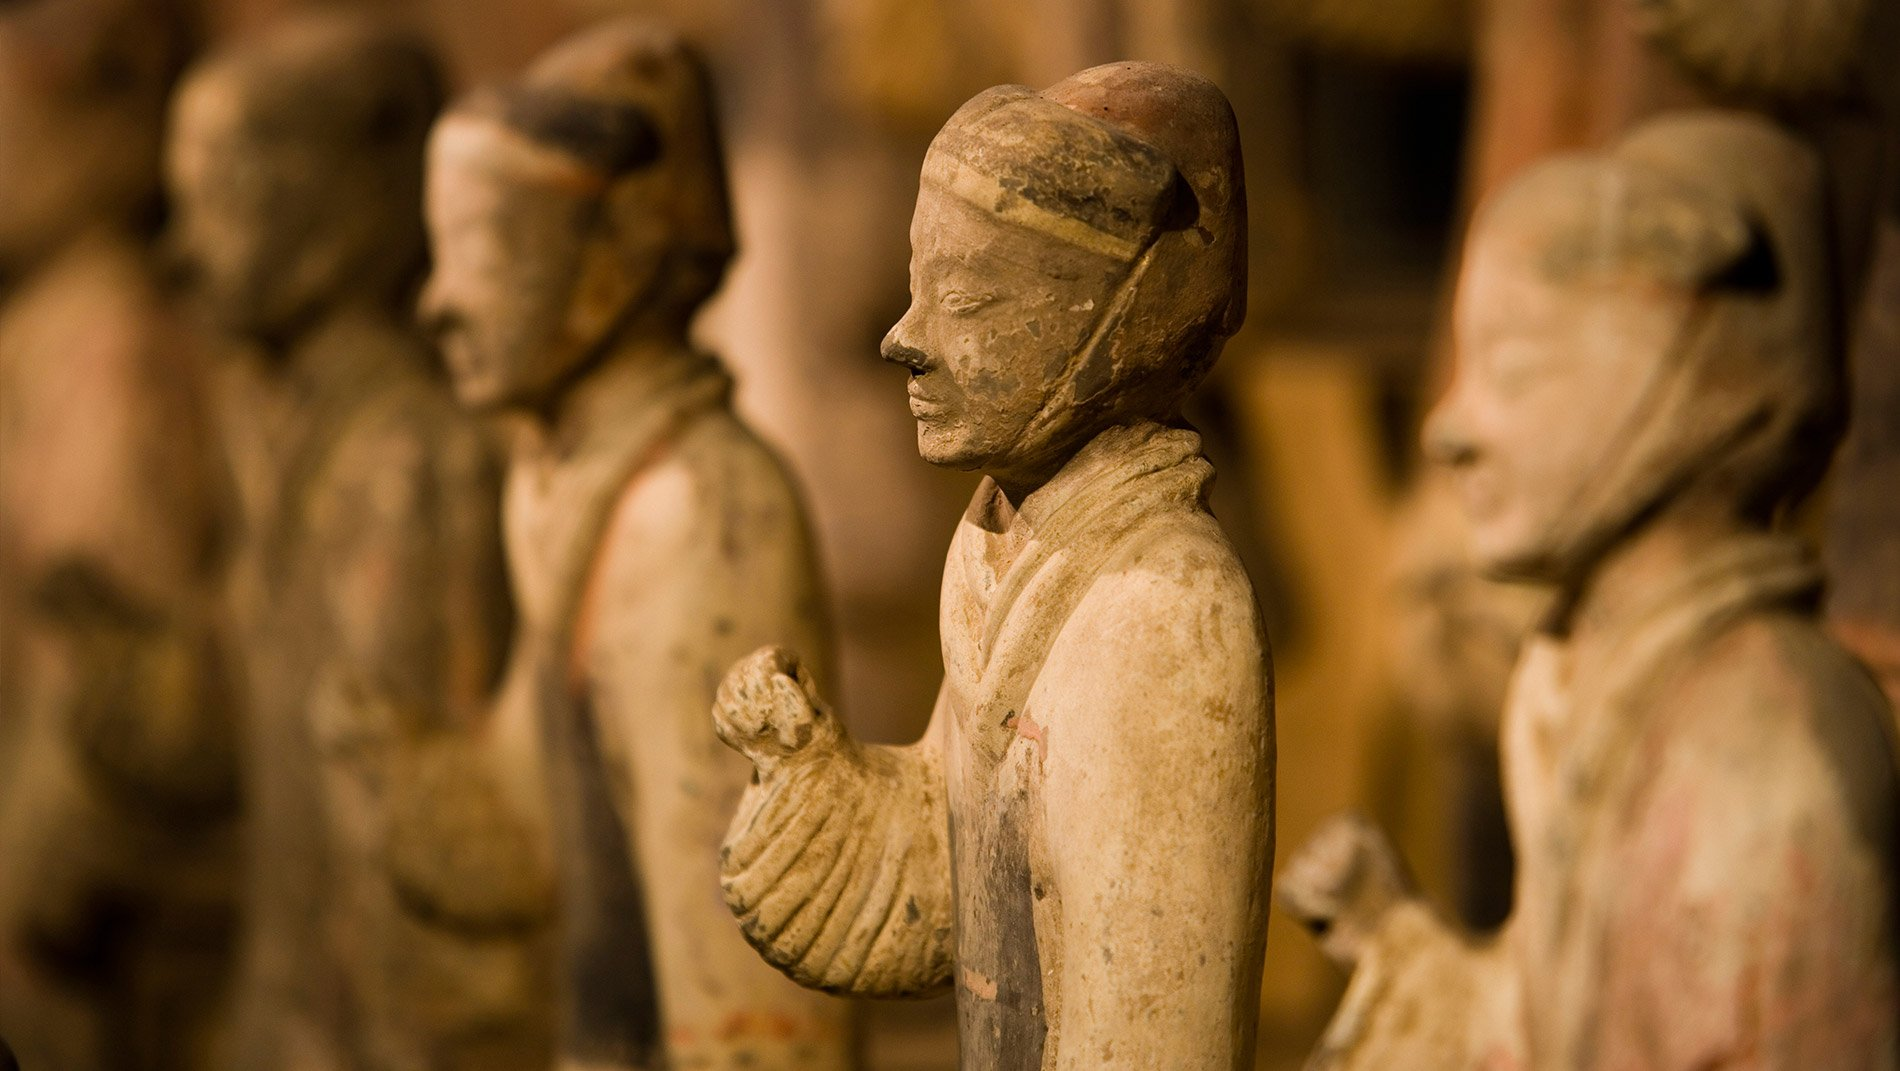 Yangling Museum~Though not as well-known as the Terracotta Warriors site, the Yangling museum of the second century BCE features thousands of stylized burial objects from the mausoleum of the Han dynasty Emperor Jing.